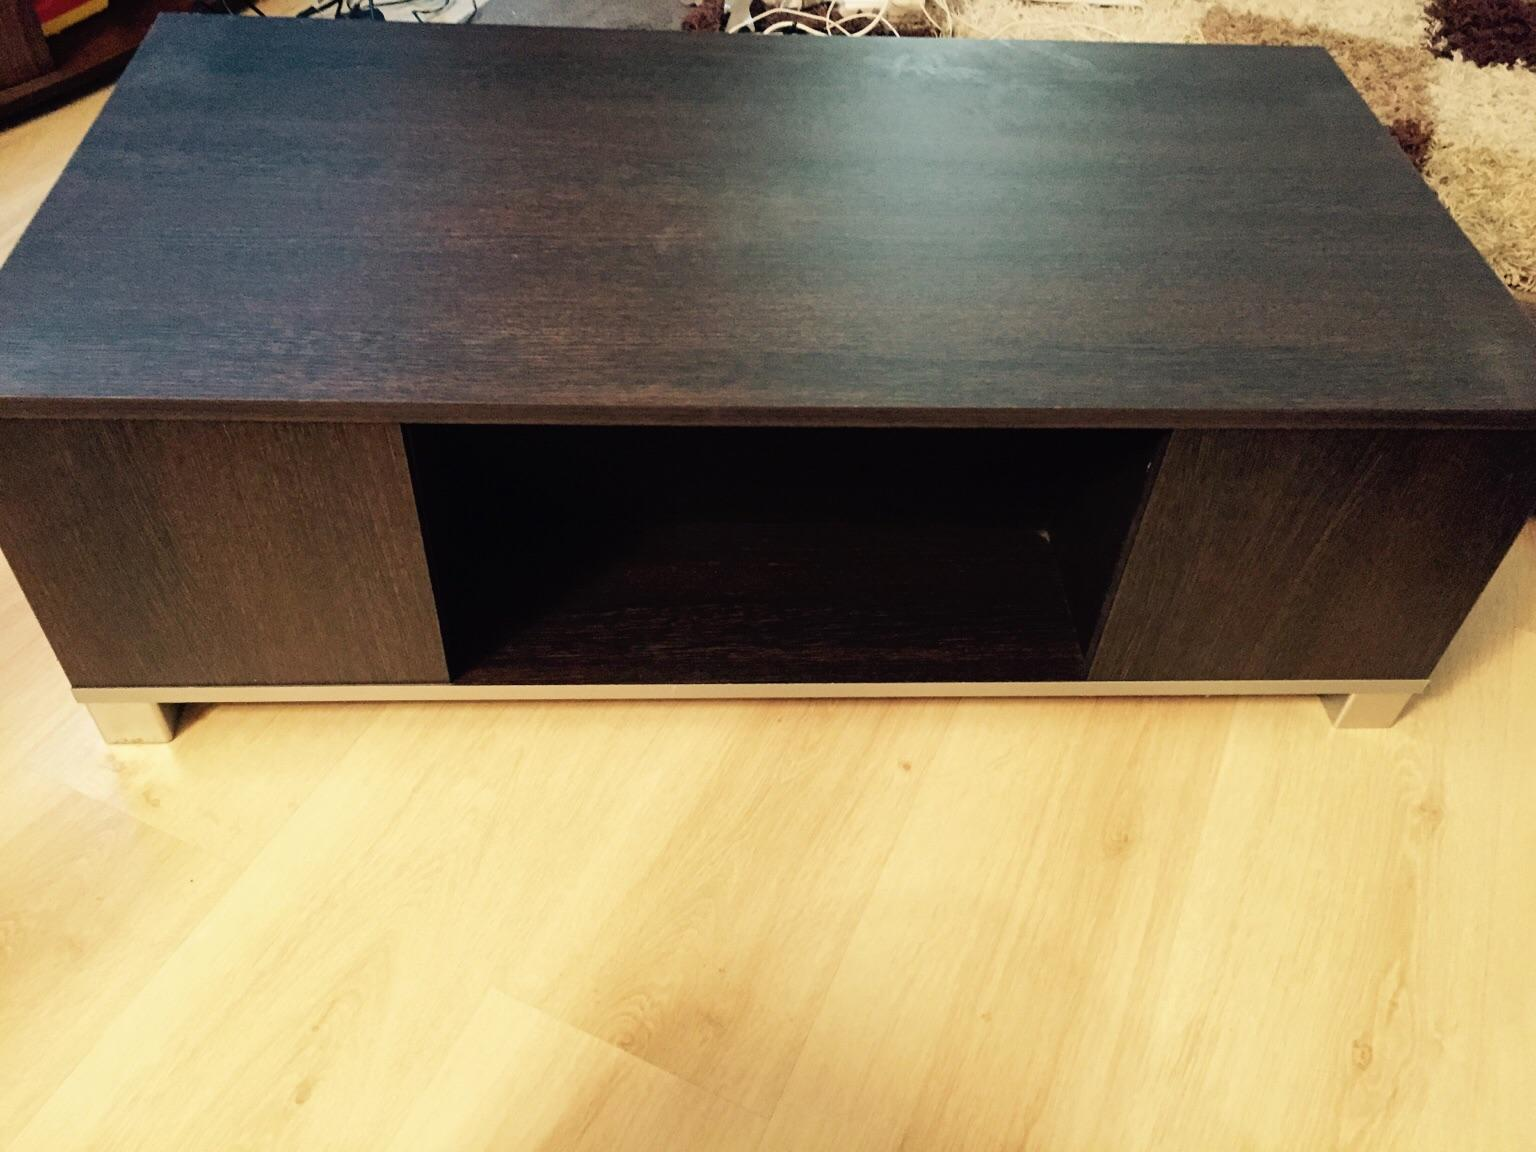 Picture of: Argos Coffee Table And Tv Cabinet In Kt14 Runnymede For 25 00 For Sale Shpock